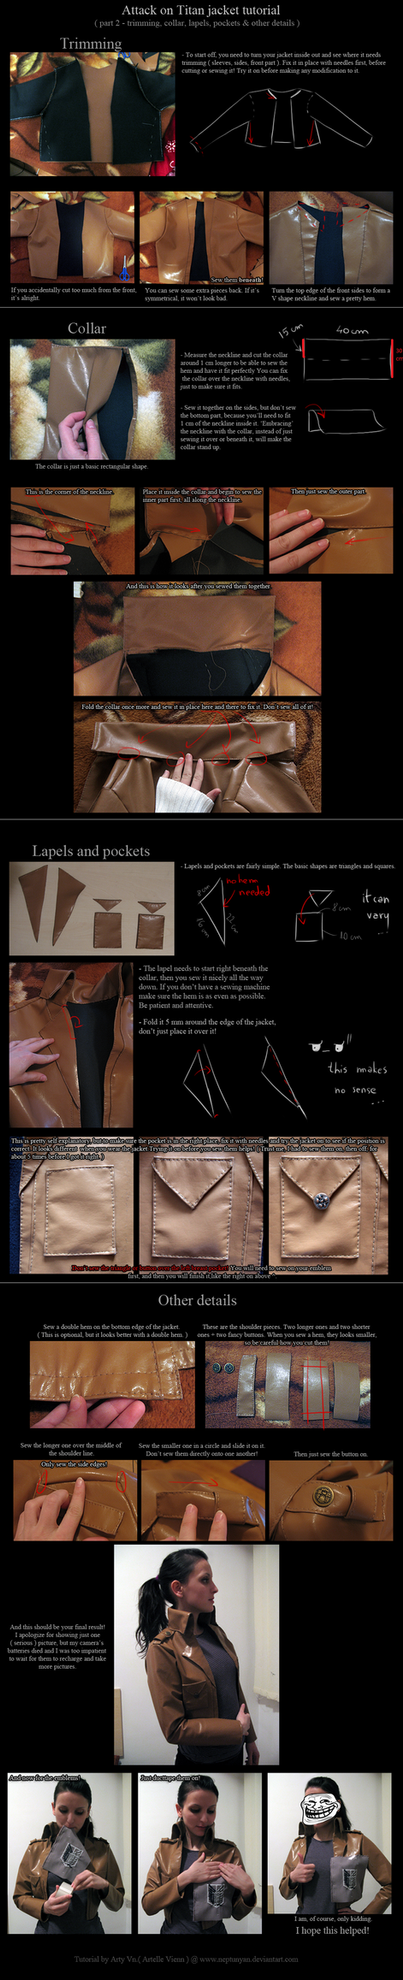 Attack on Titan jacket tutorial - details. by neptunyan